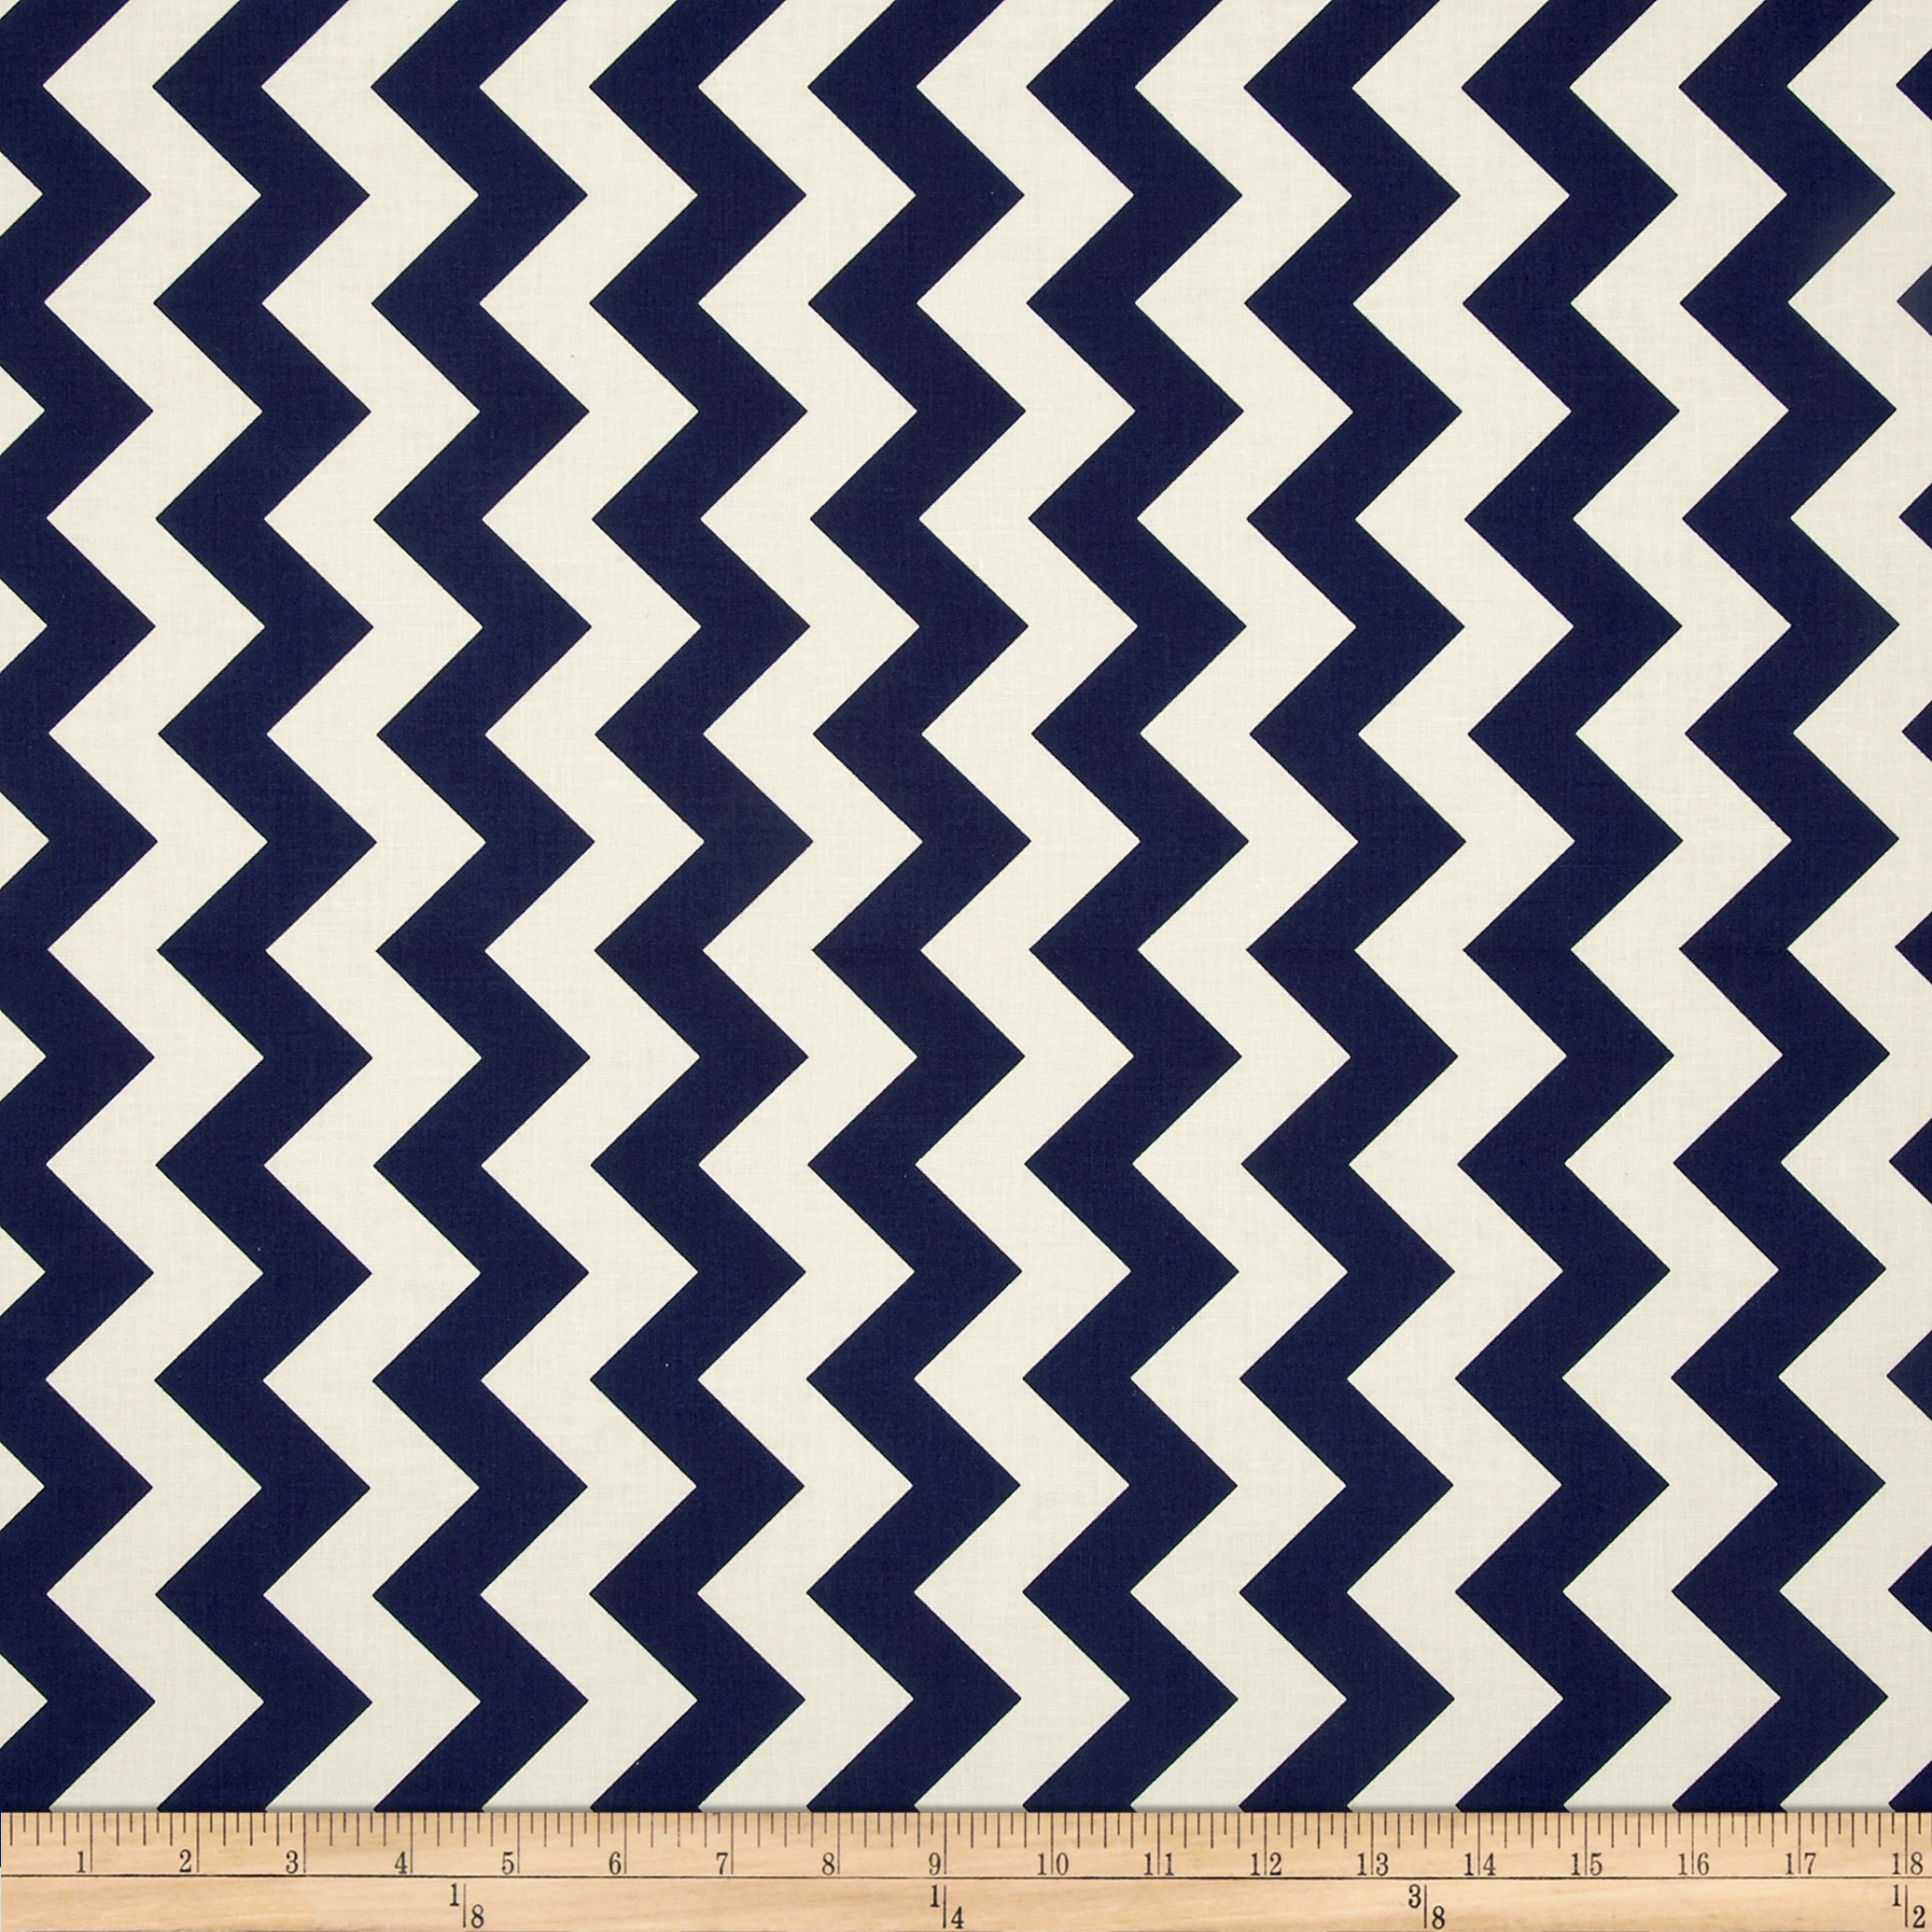 Riley Blake Le Creme Basics Chevron Navy/Cream Fabric